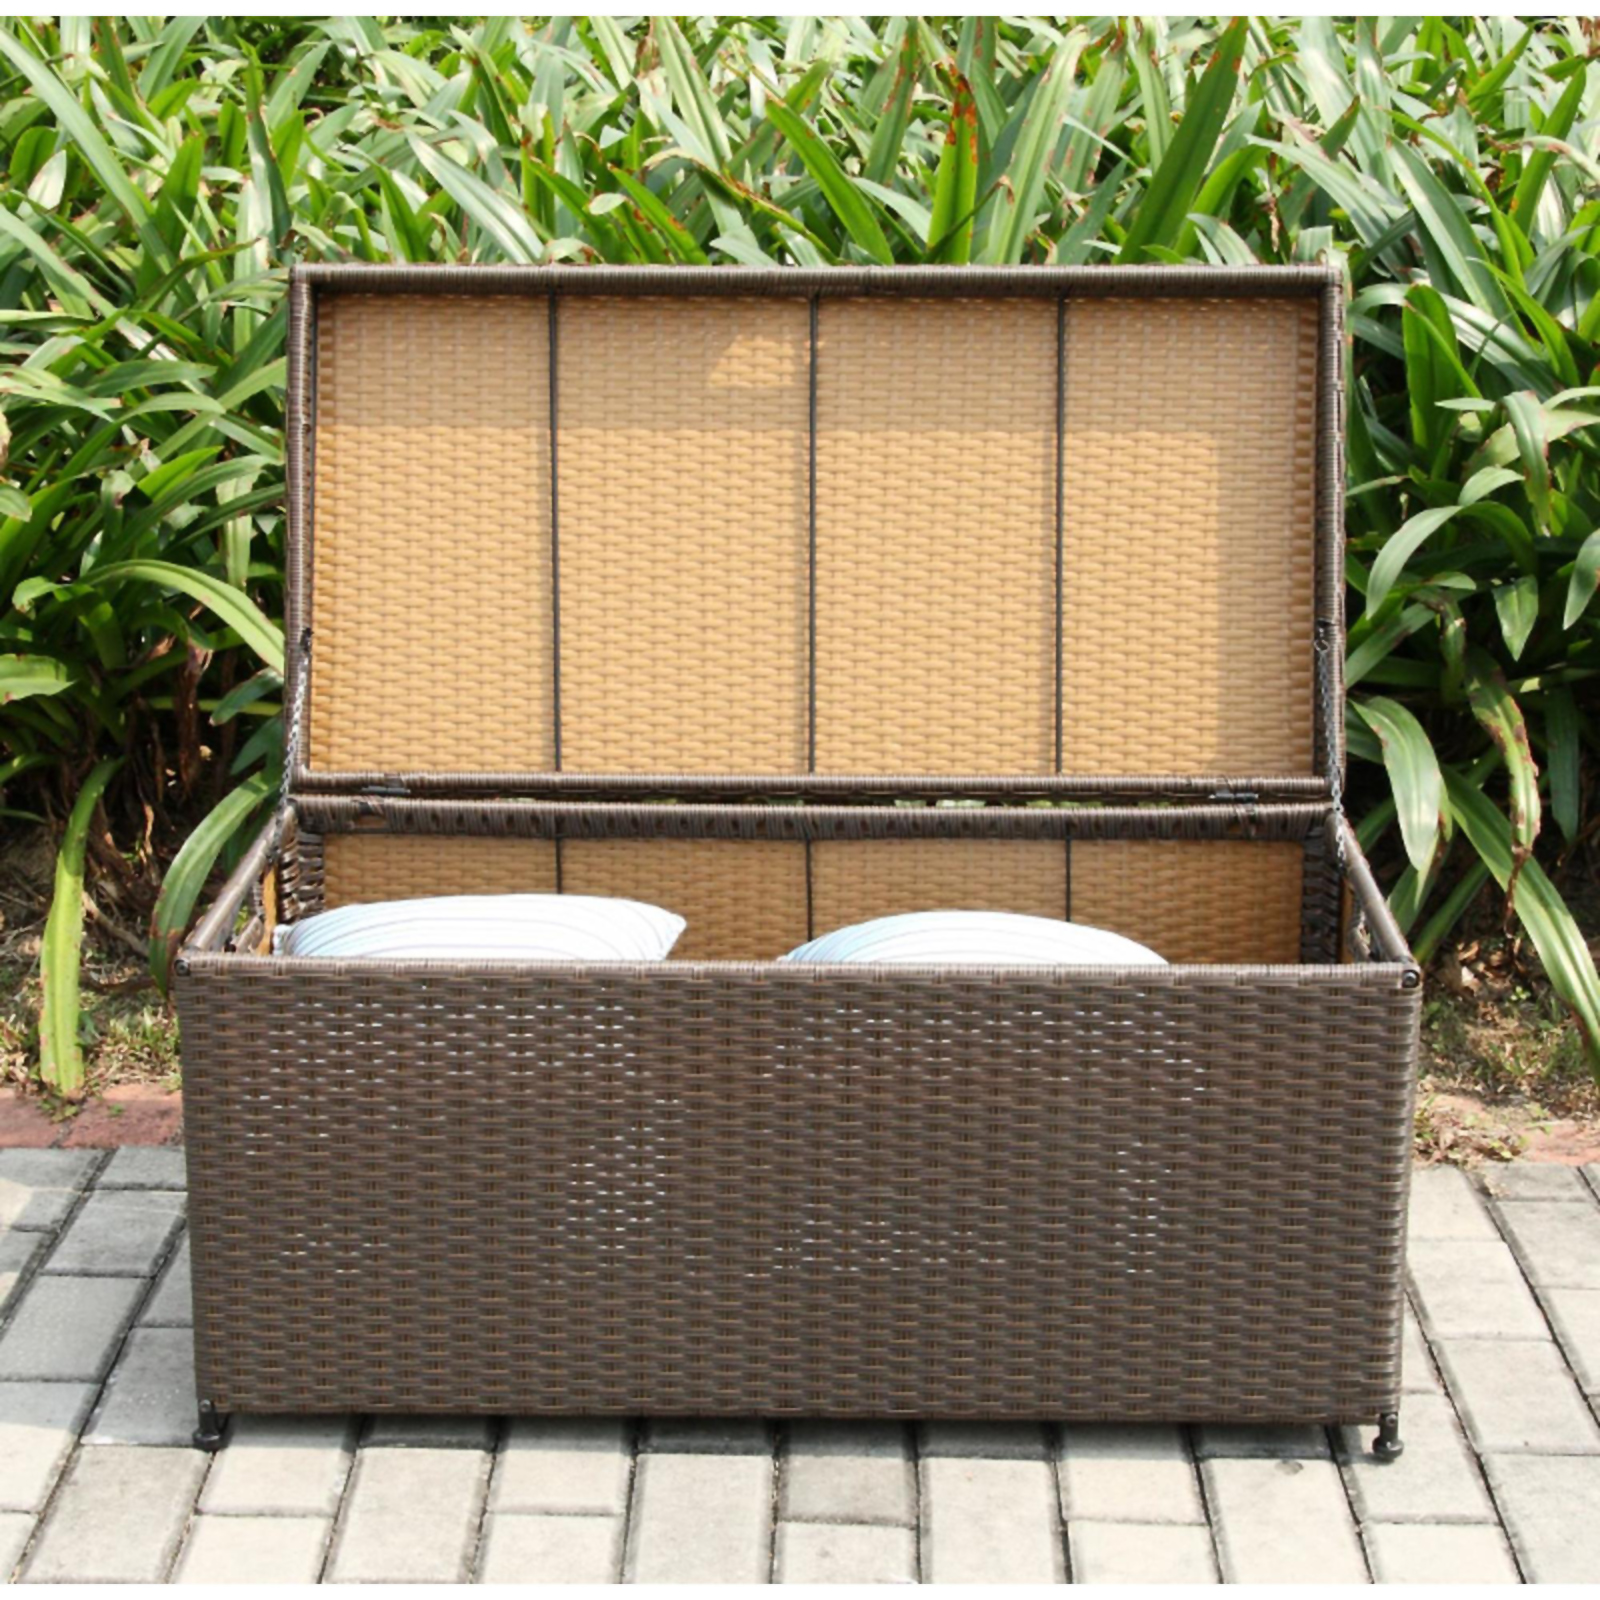 CC Outdoor Living Wicker Hinged Storage Deck Box - Sears ... on Cc Outdoor Living id=45648